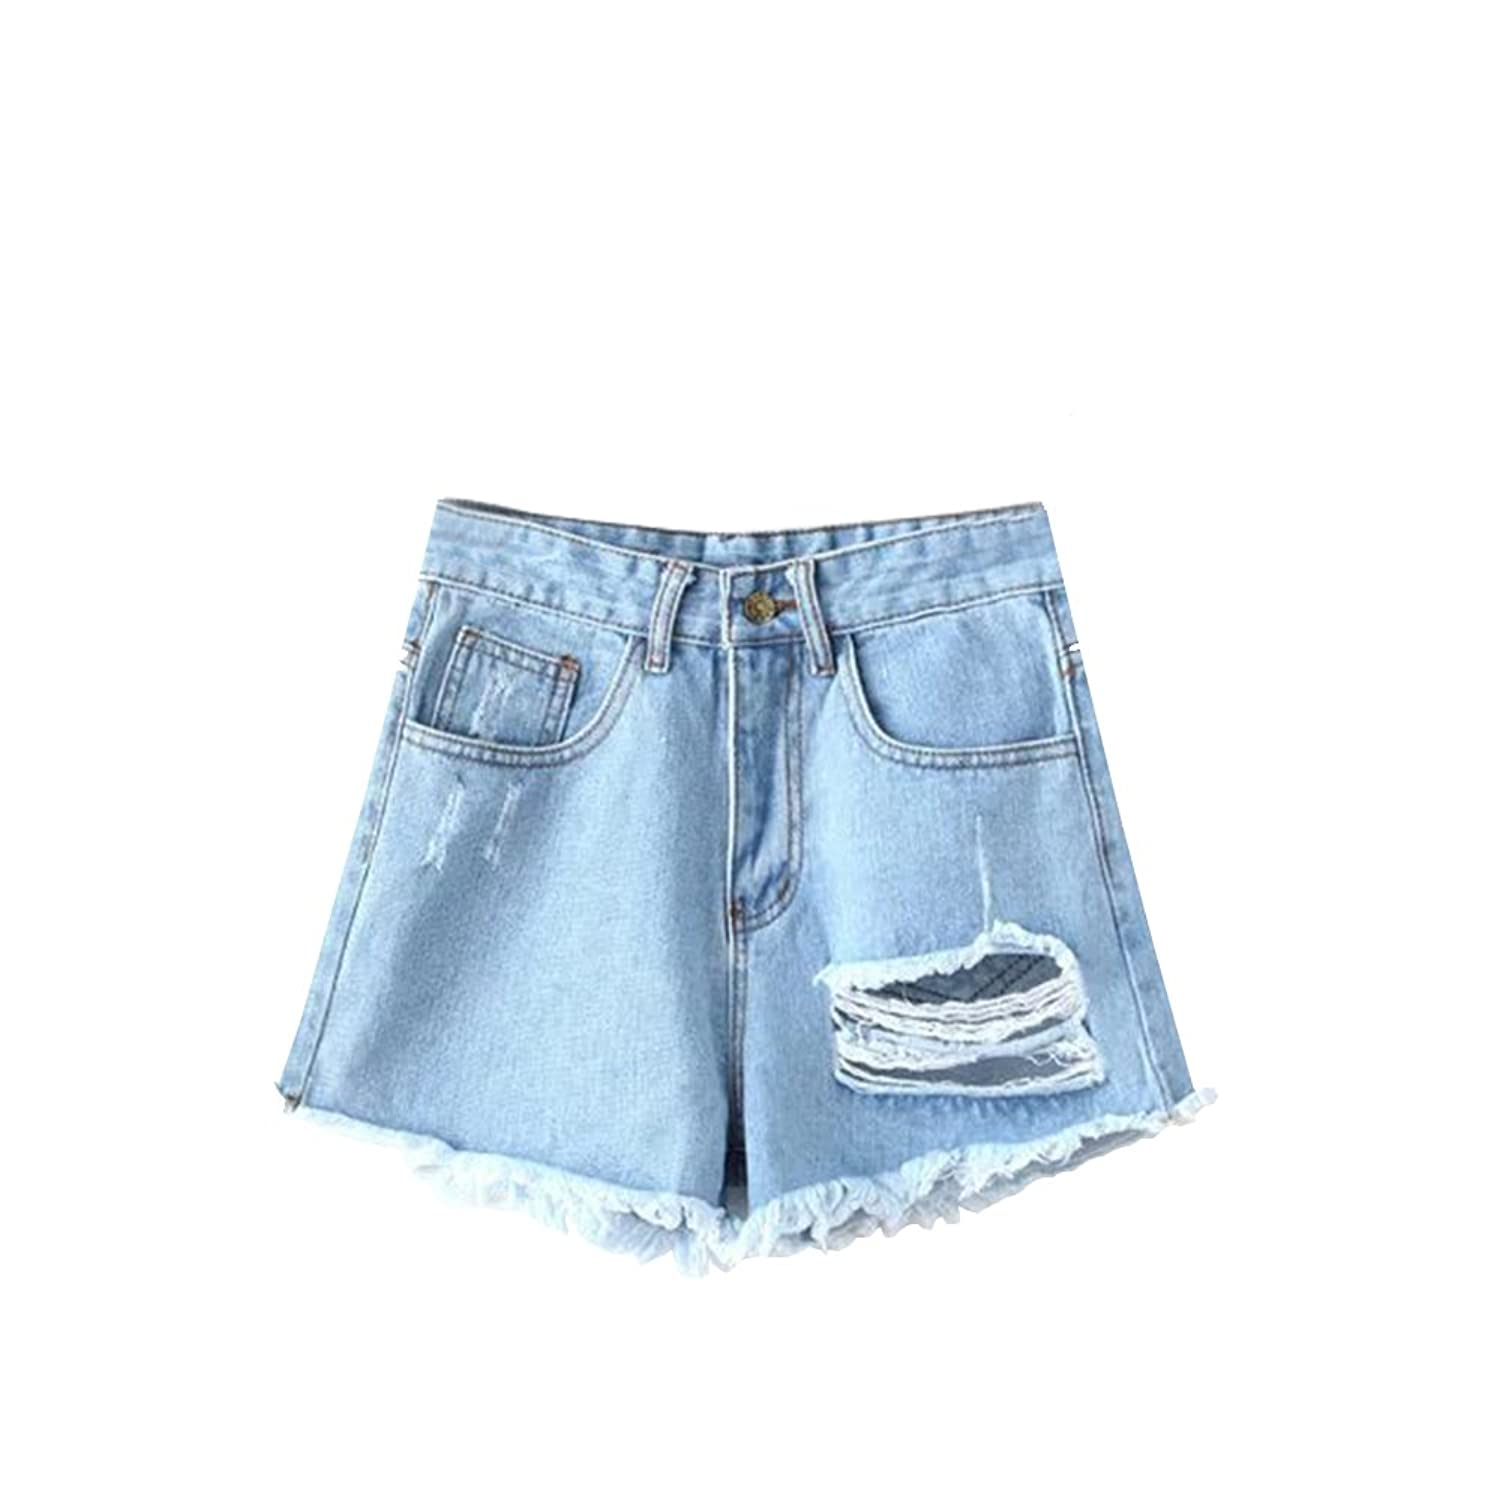 New Spring and Summer Light Hole Edges in Waist Denim Shorts